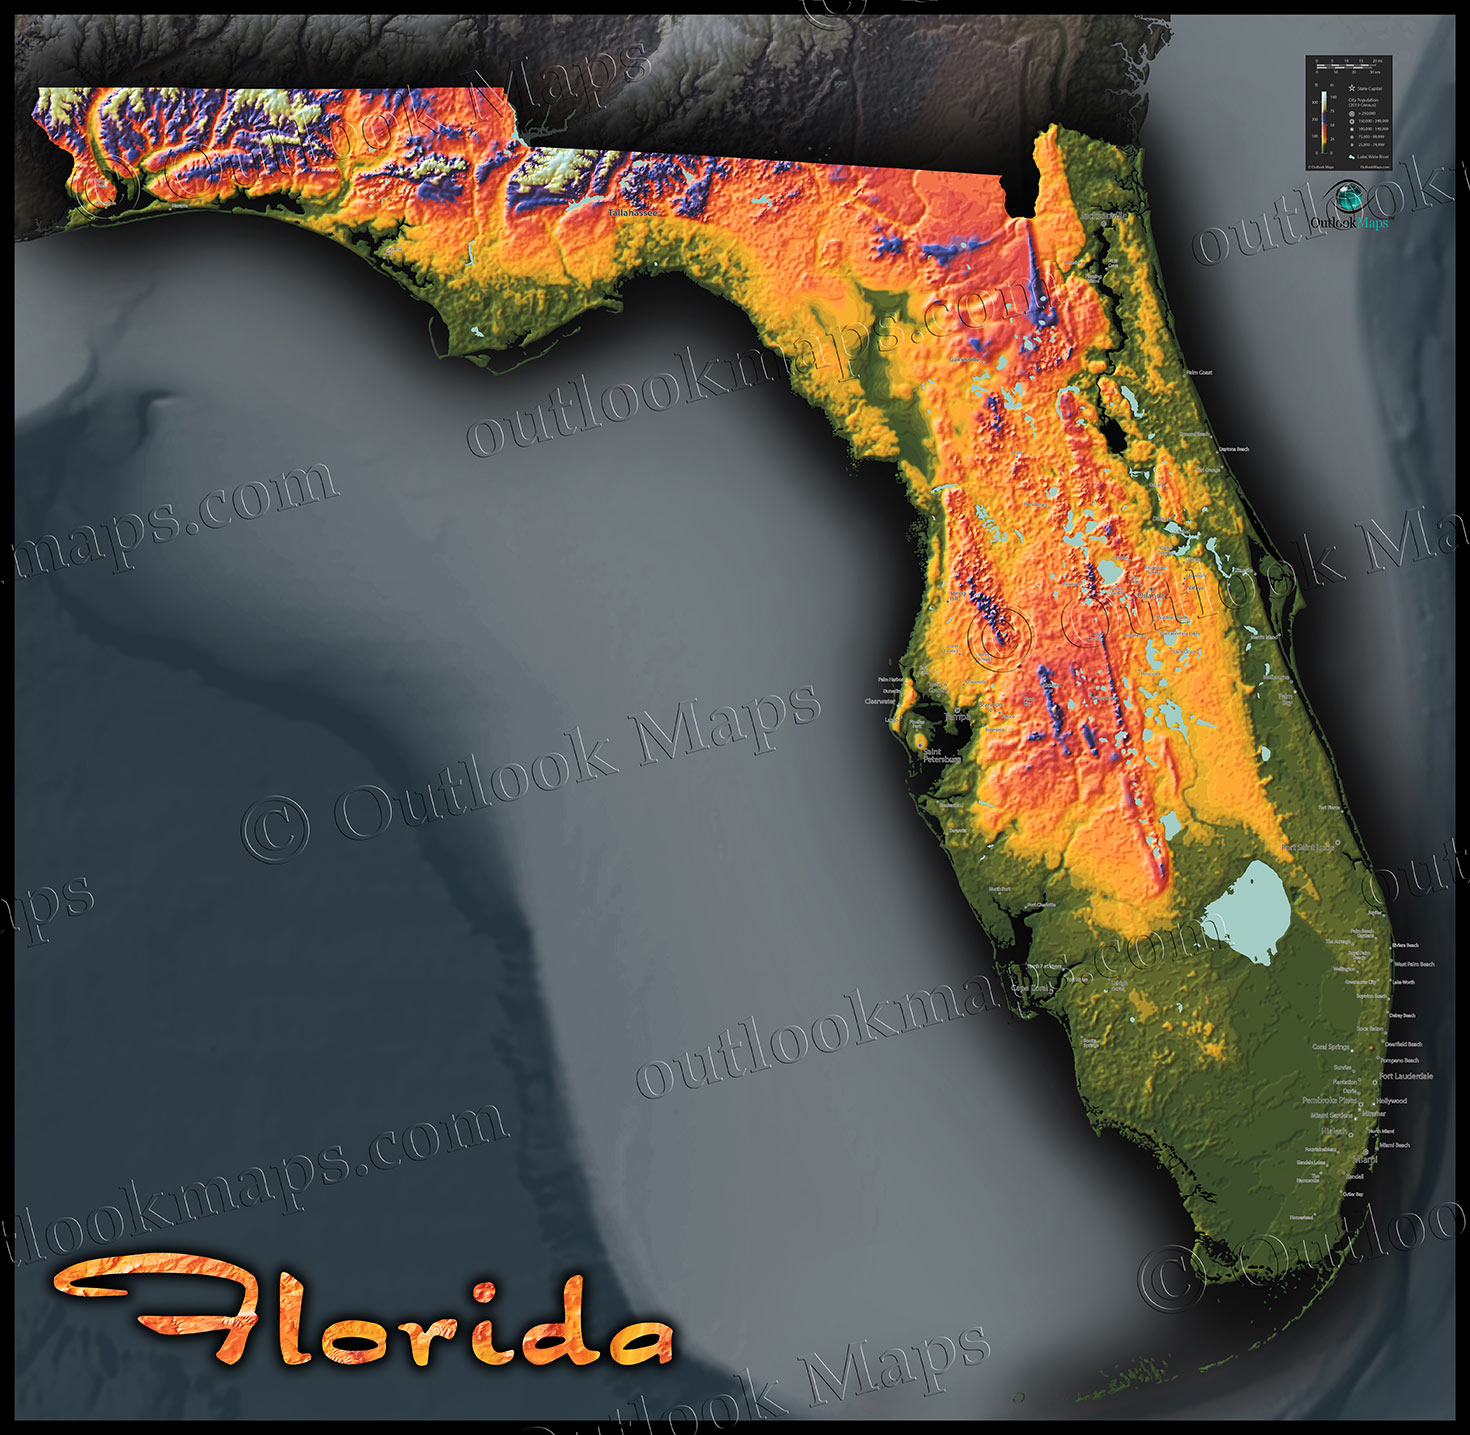 Florida Elevation Map Florida Topography Map | Colorful Natural Physical Landscape